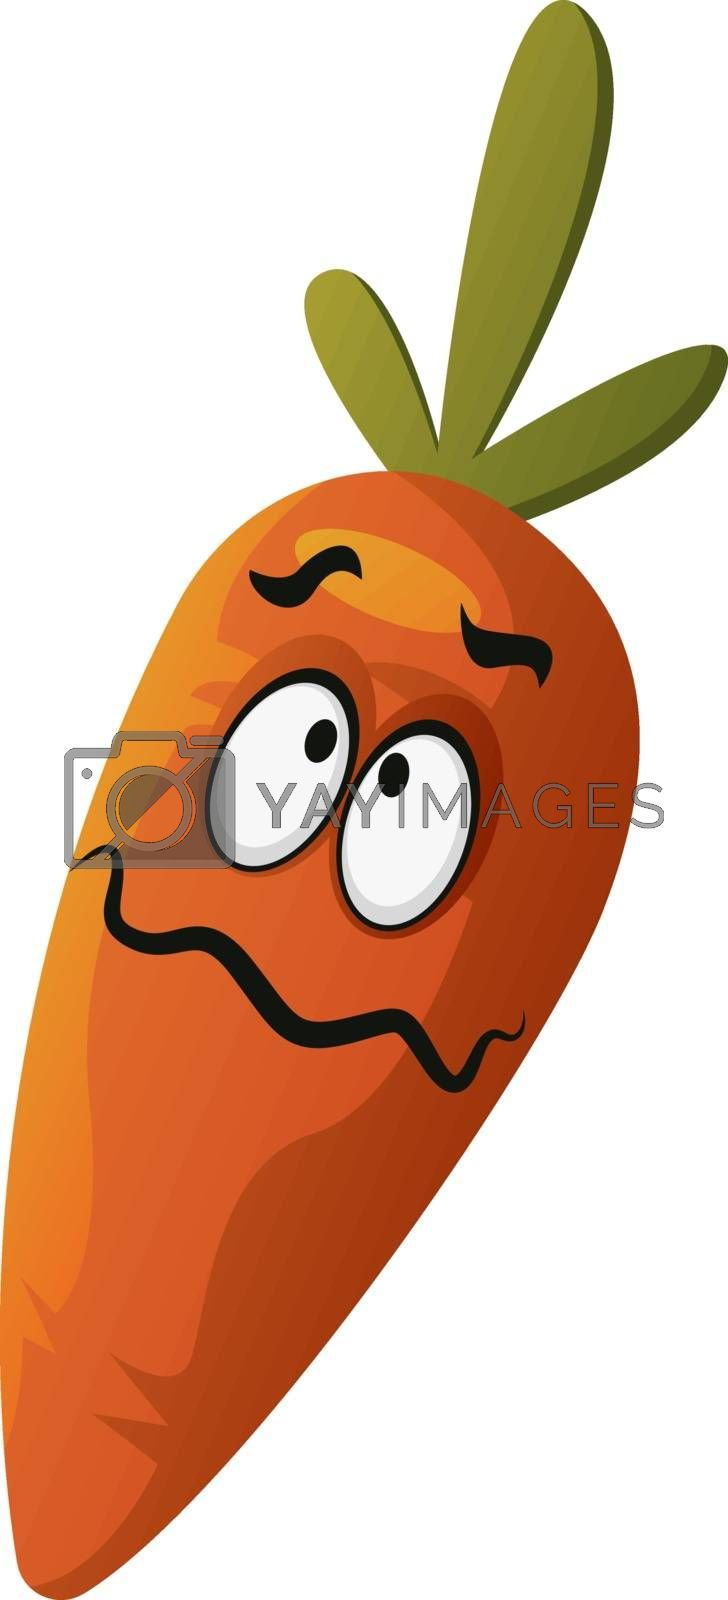 Royalty free image of Carrot confused illustration vector on white background by Morphart